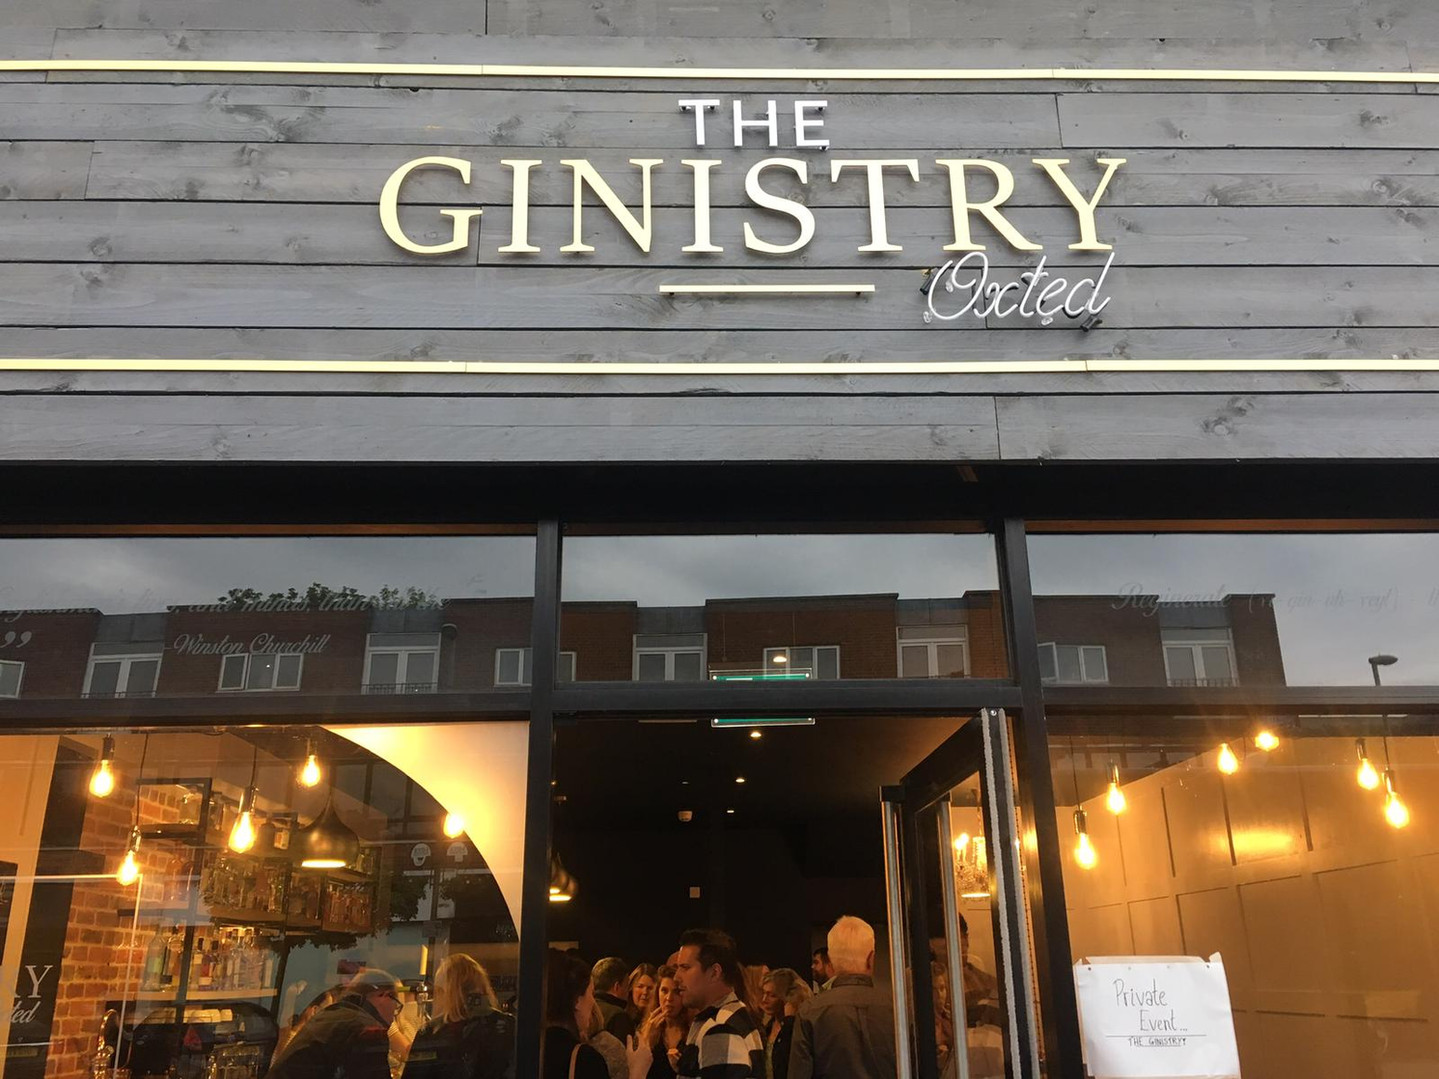 The Ginistry